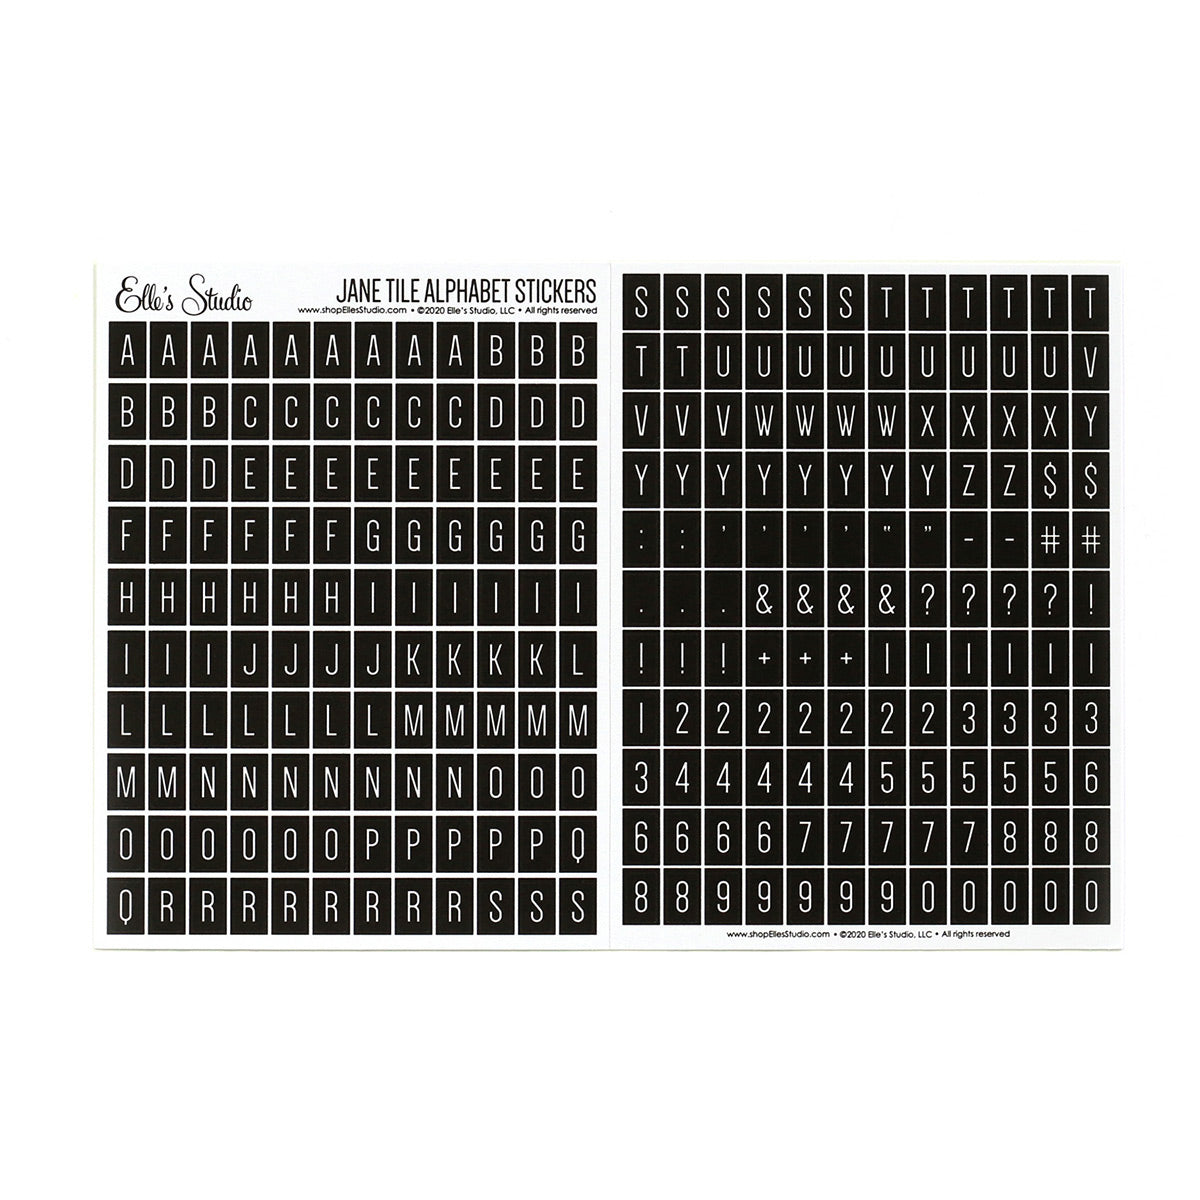 Elles-Studio-January-2021-Jane-Tile-Alphabet-Stickers-Black_ebc8e8d9-c70f-45a0-b942-c78584faefa1.jpg?v=1610295589